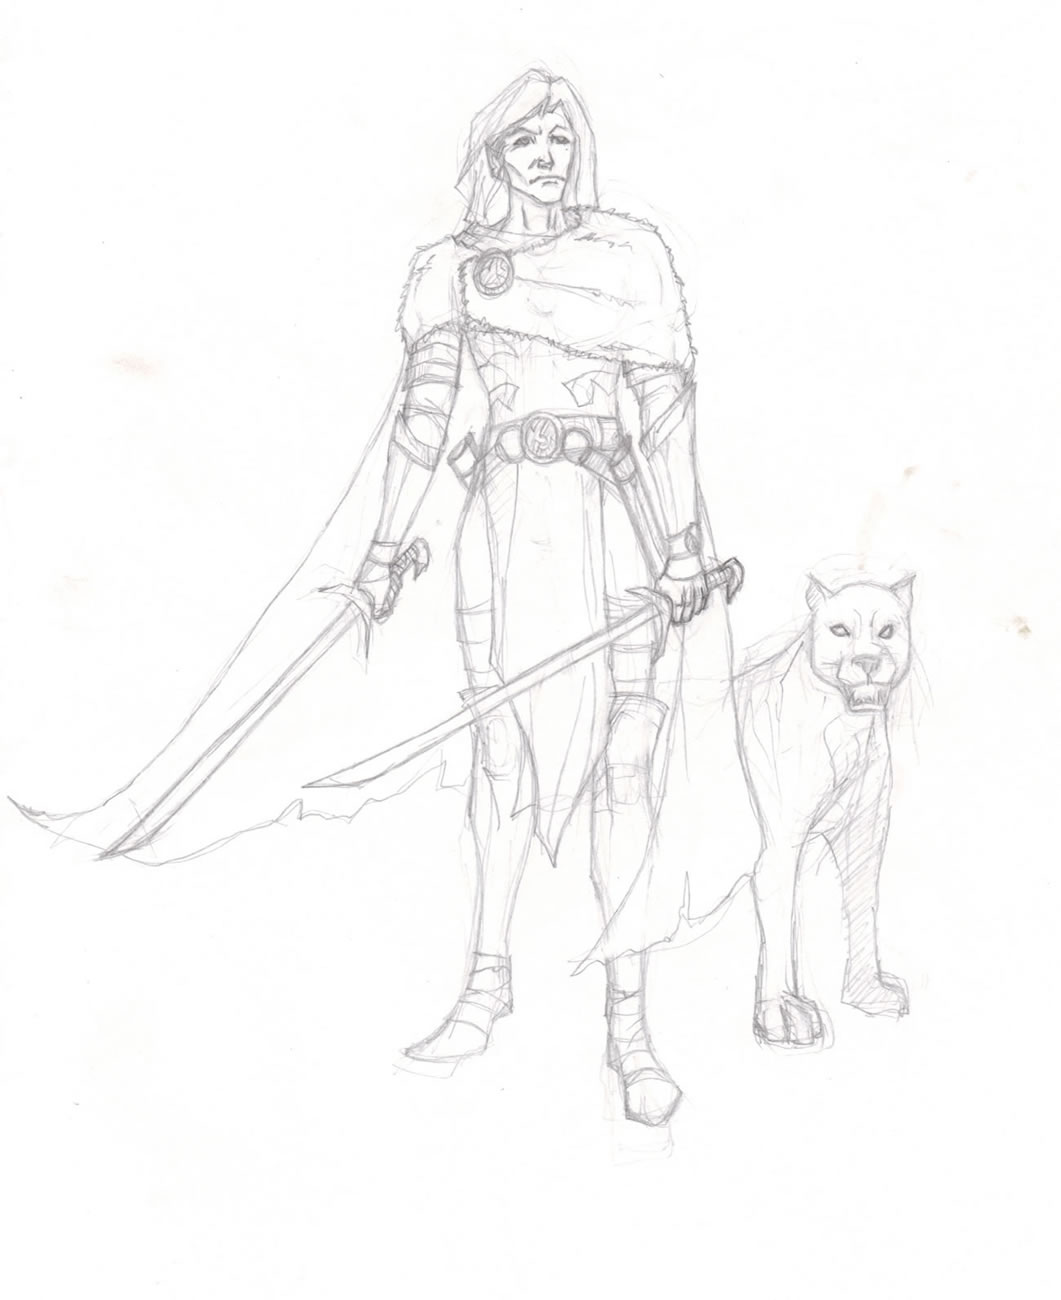 drizzt and his panther by Selkirk